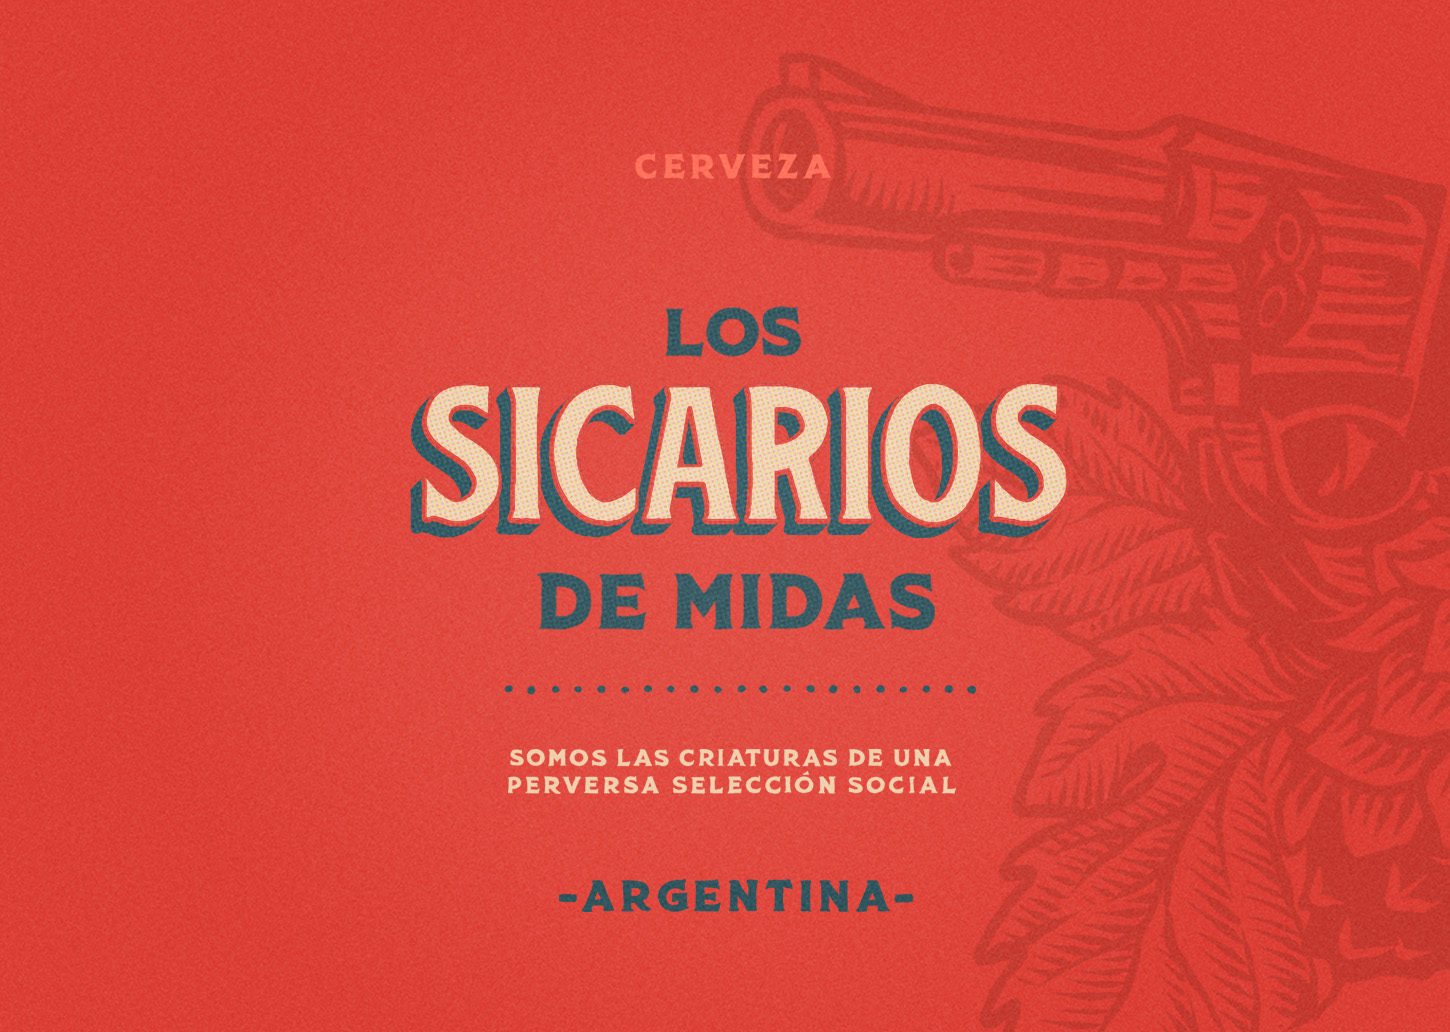 Emi Renzi Creates Packaging Design for a IPA American Style Beer from Argentina